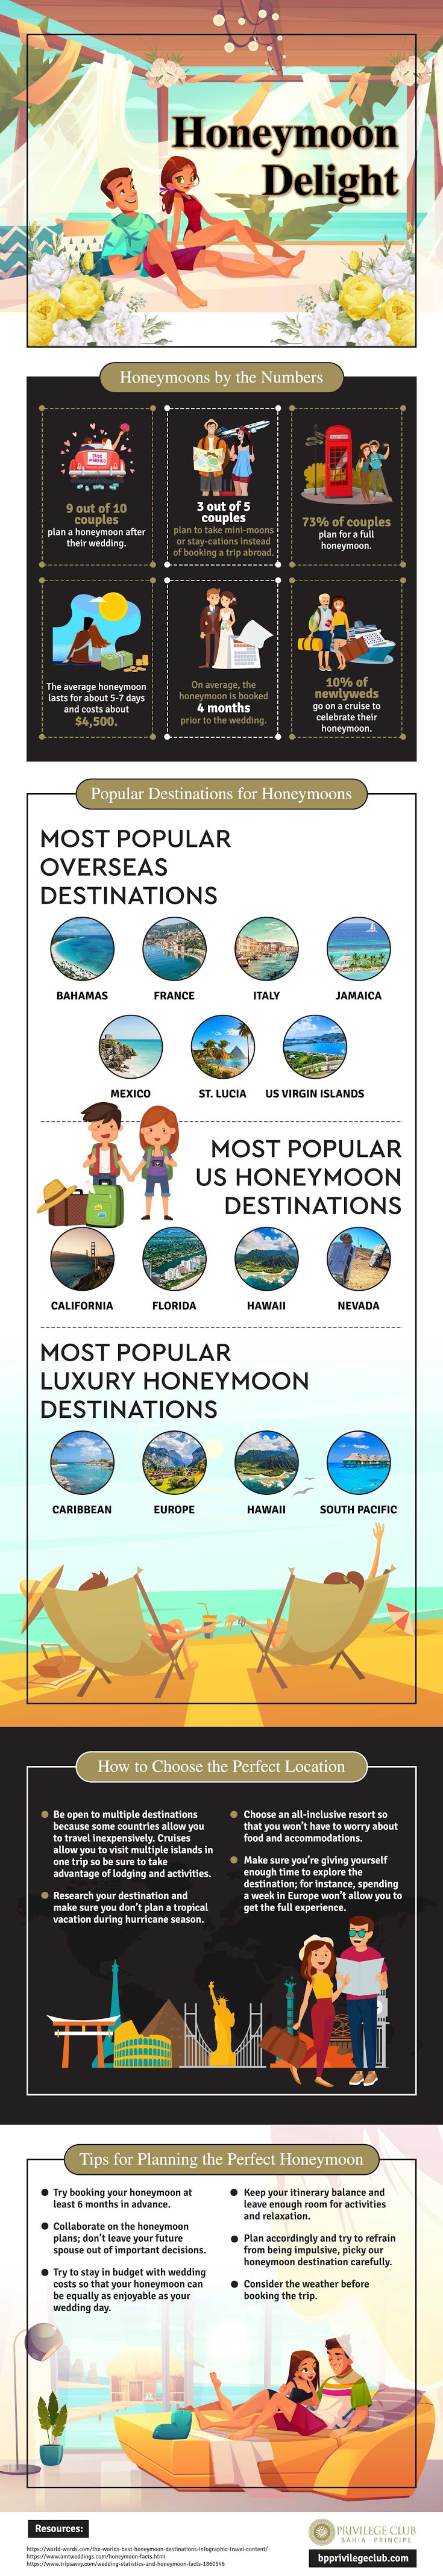 Honeymoon Delight: What Is Your Ideal Honeymoon? #infographic